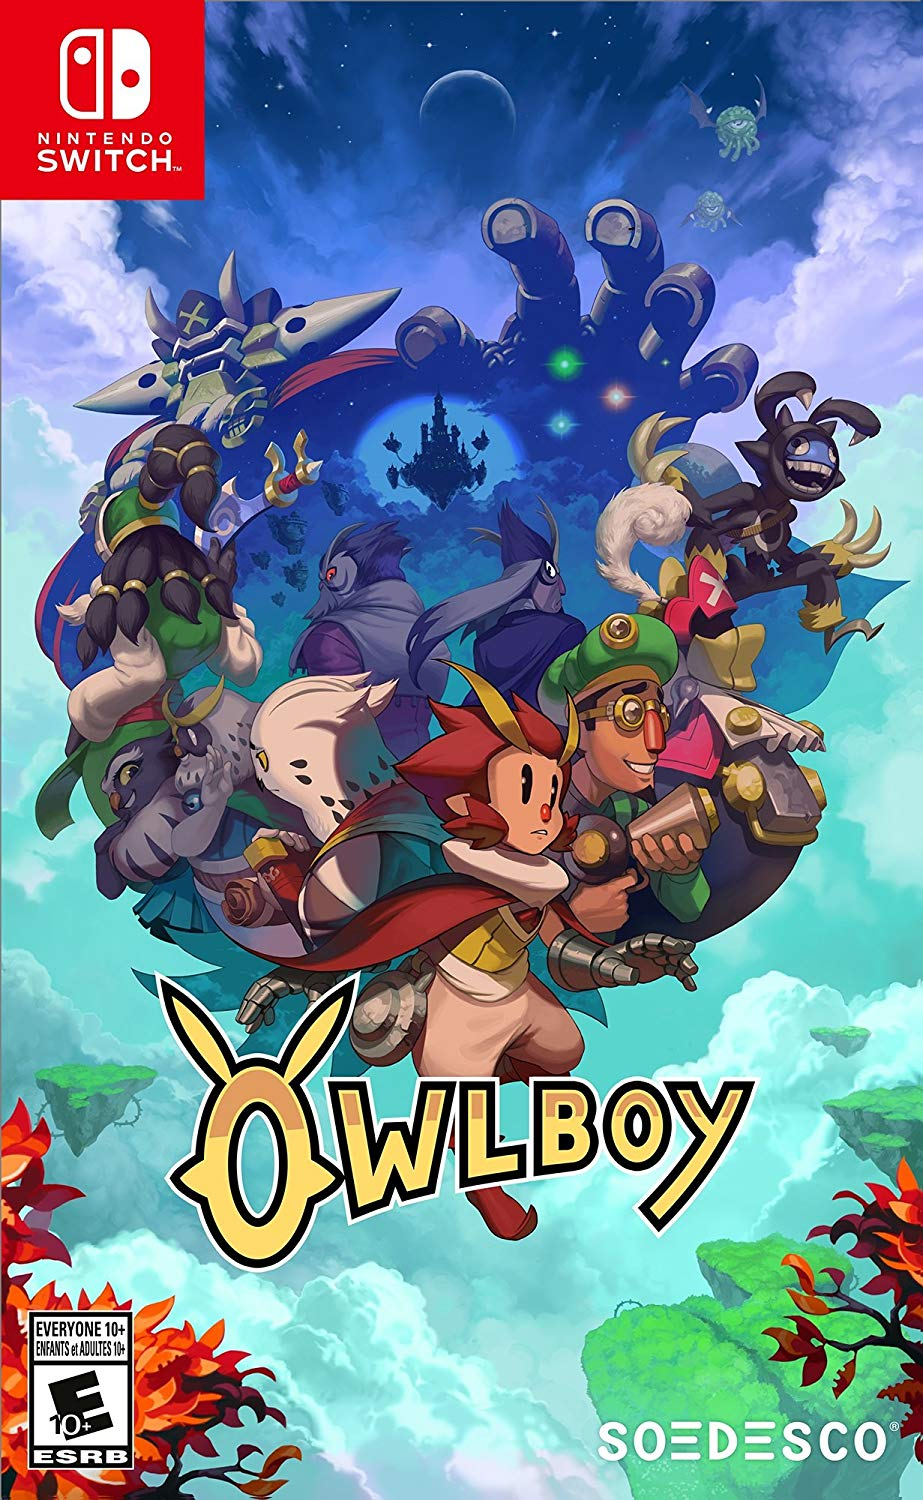 Physical Copy of Owlboy for the Nintendo Switch - $19.93 @ Amazon